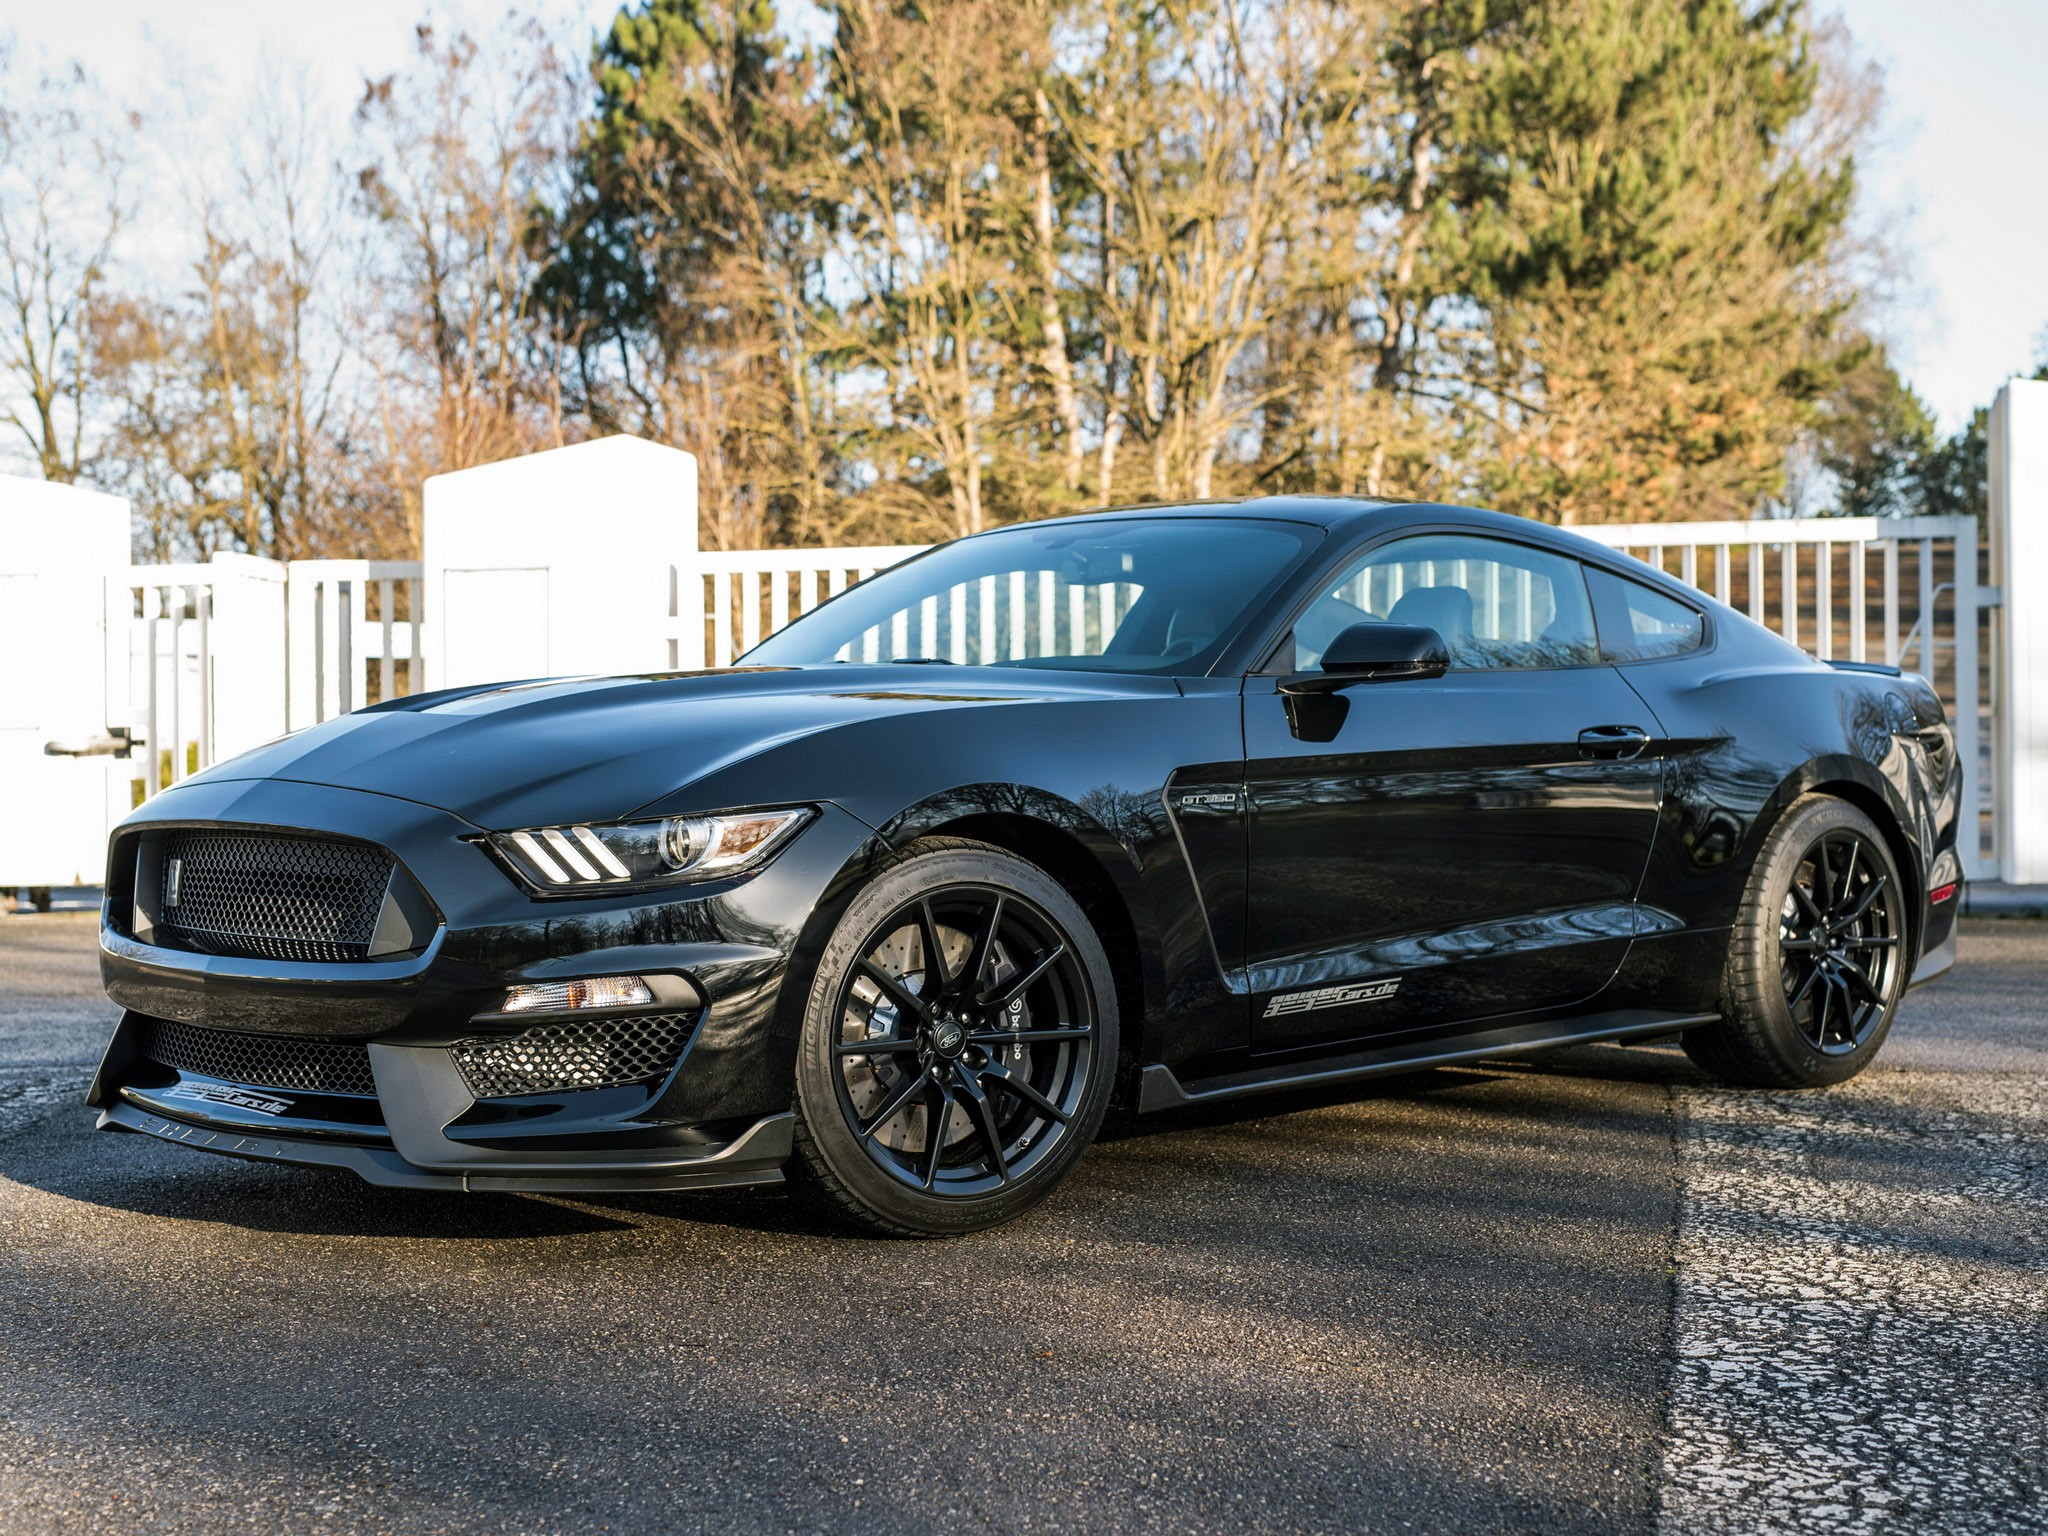 2016 Geigercars - Ford Mustang Shelby GT350